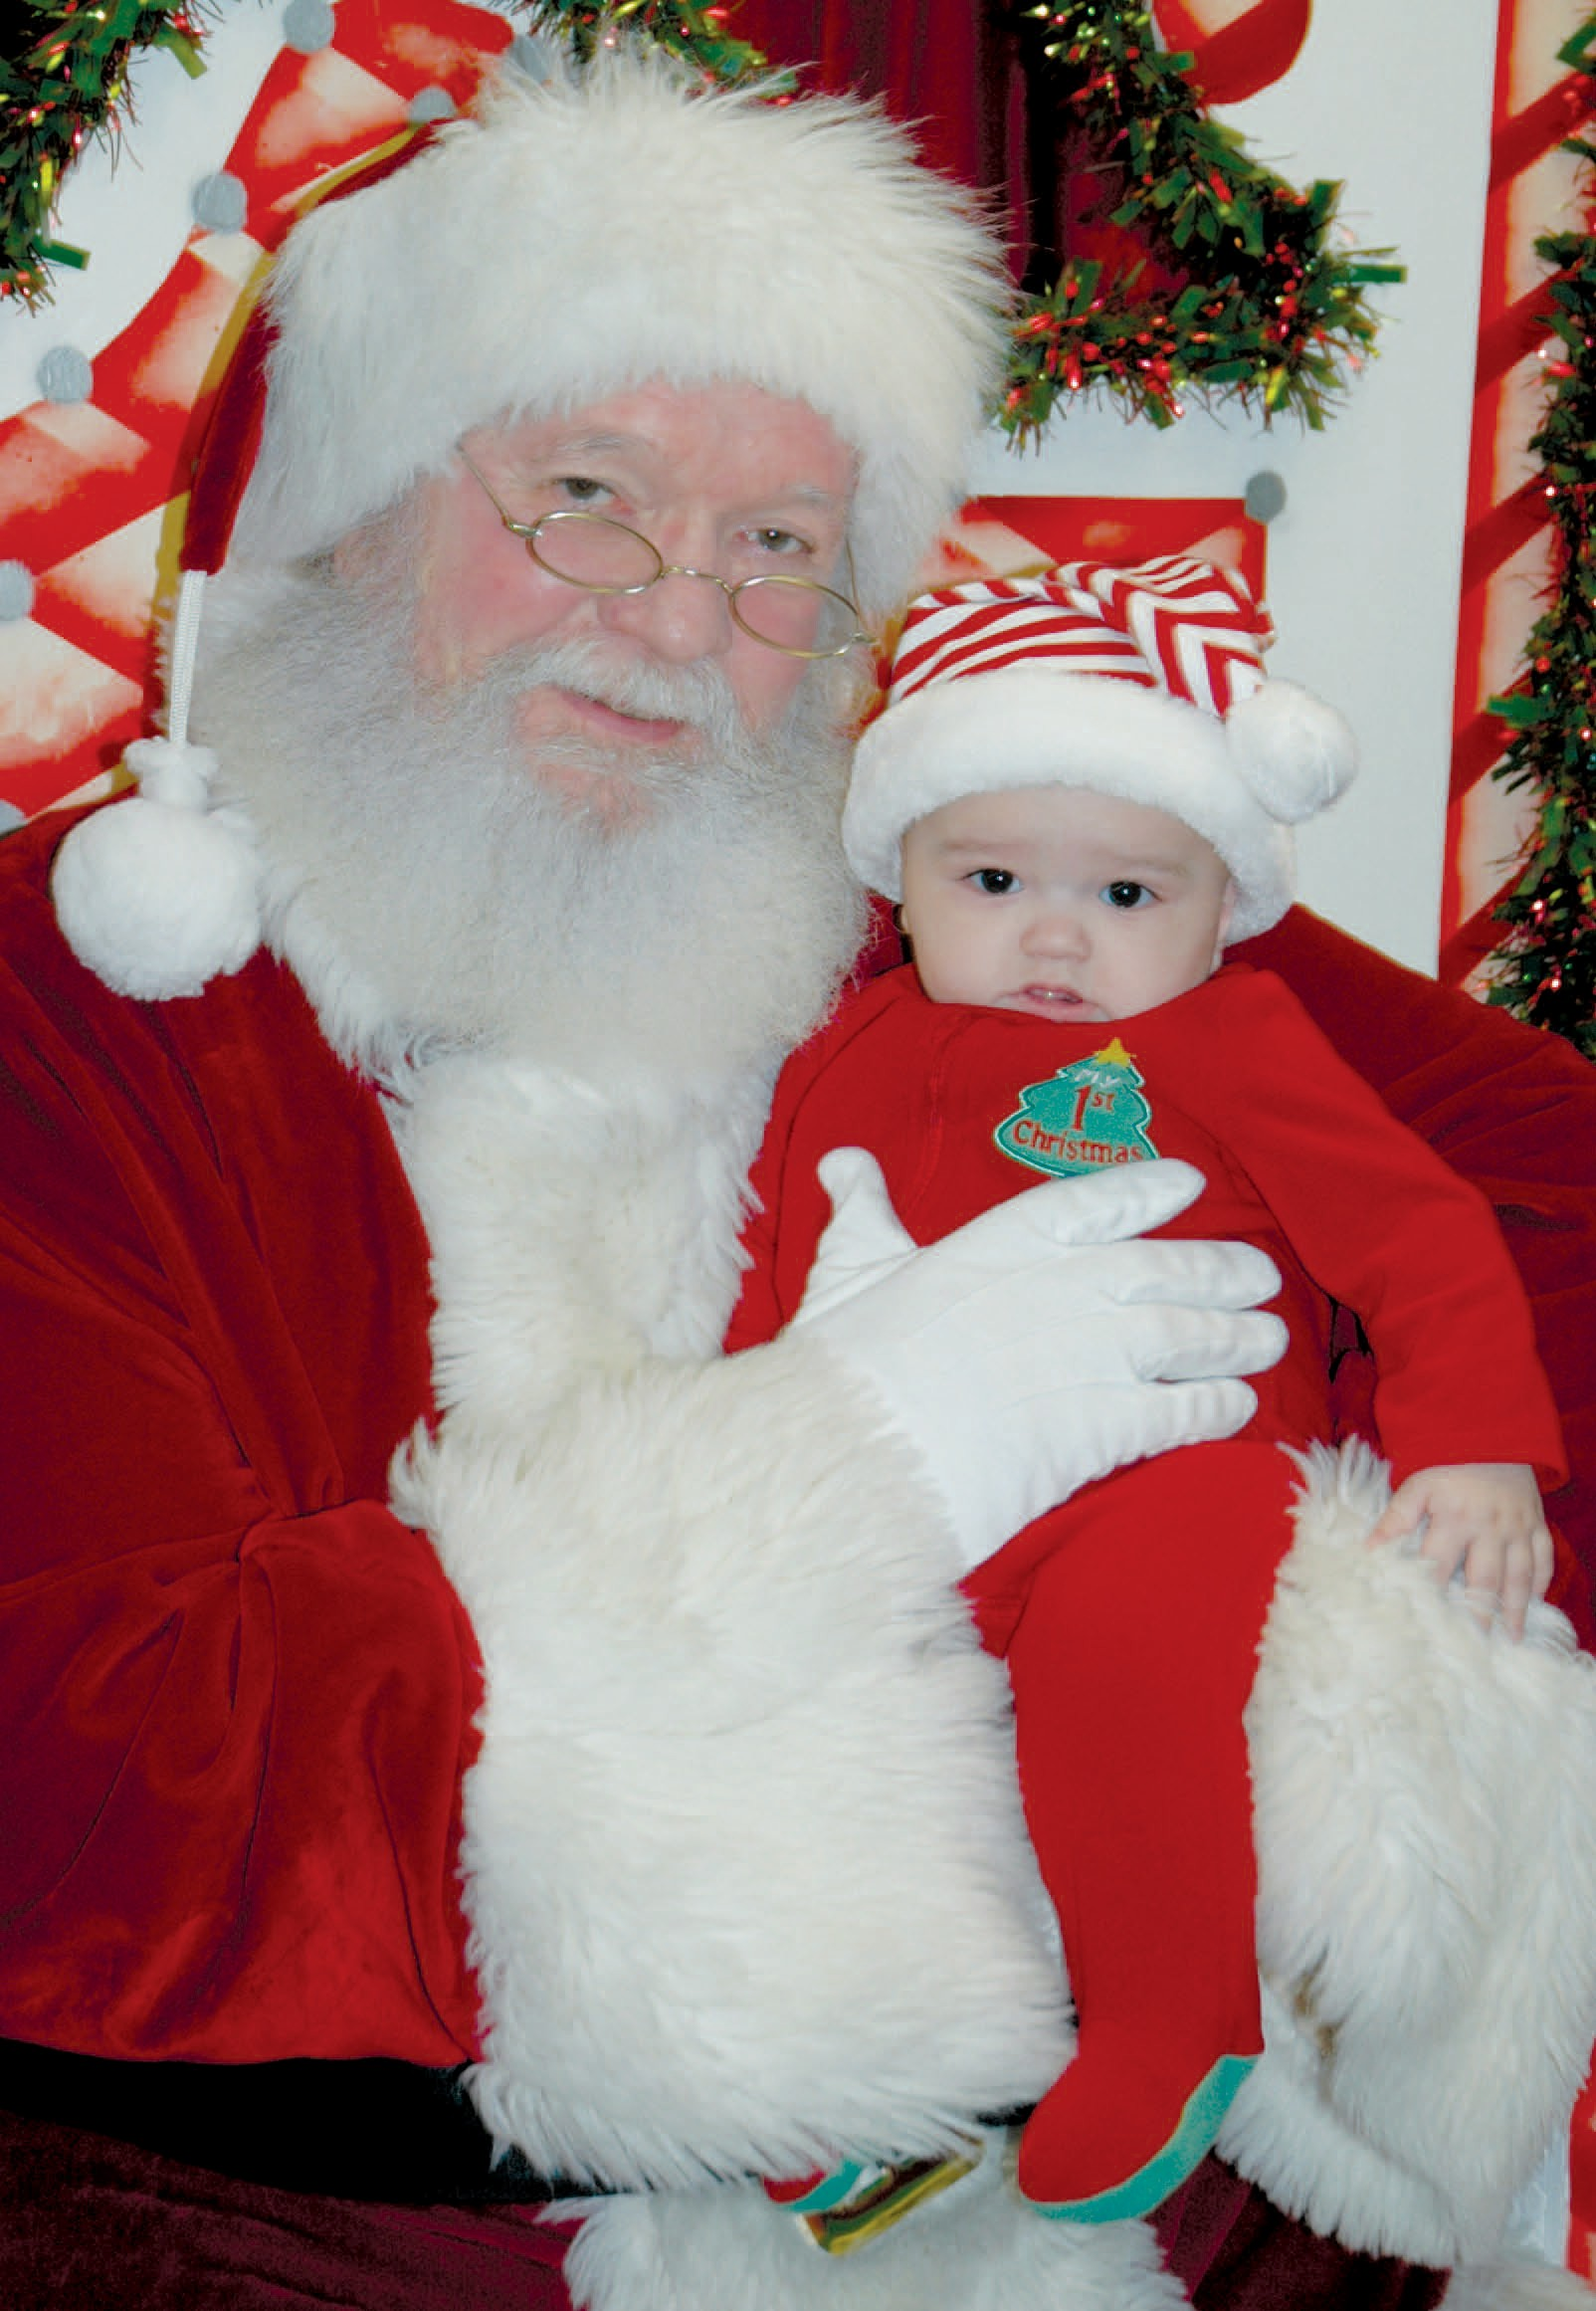 At the age of 6 months, Tomas Joaquin Teniente may not know exactly what he wants for Christmas, but he was happy to have his very first visit with Santa Claus on Monday, December 5, at the Jourdanton Community Center/Library. Little Tomas was in Jourdanton visiting relatives. He is the son of Crystal Goins and Tomas Teniente.